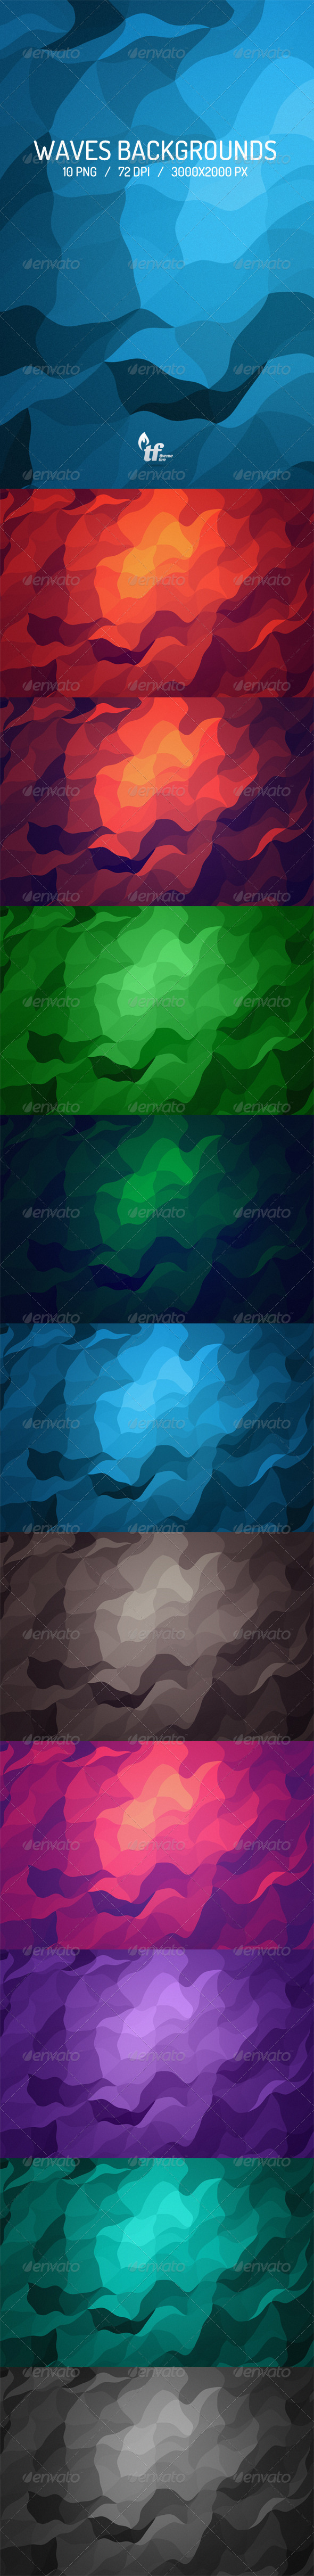 GraphicRiver Waves Backgrounds 6923769